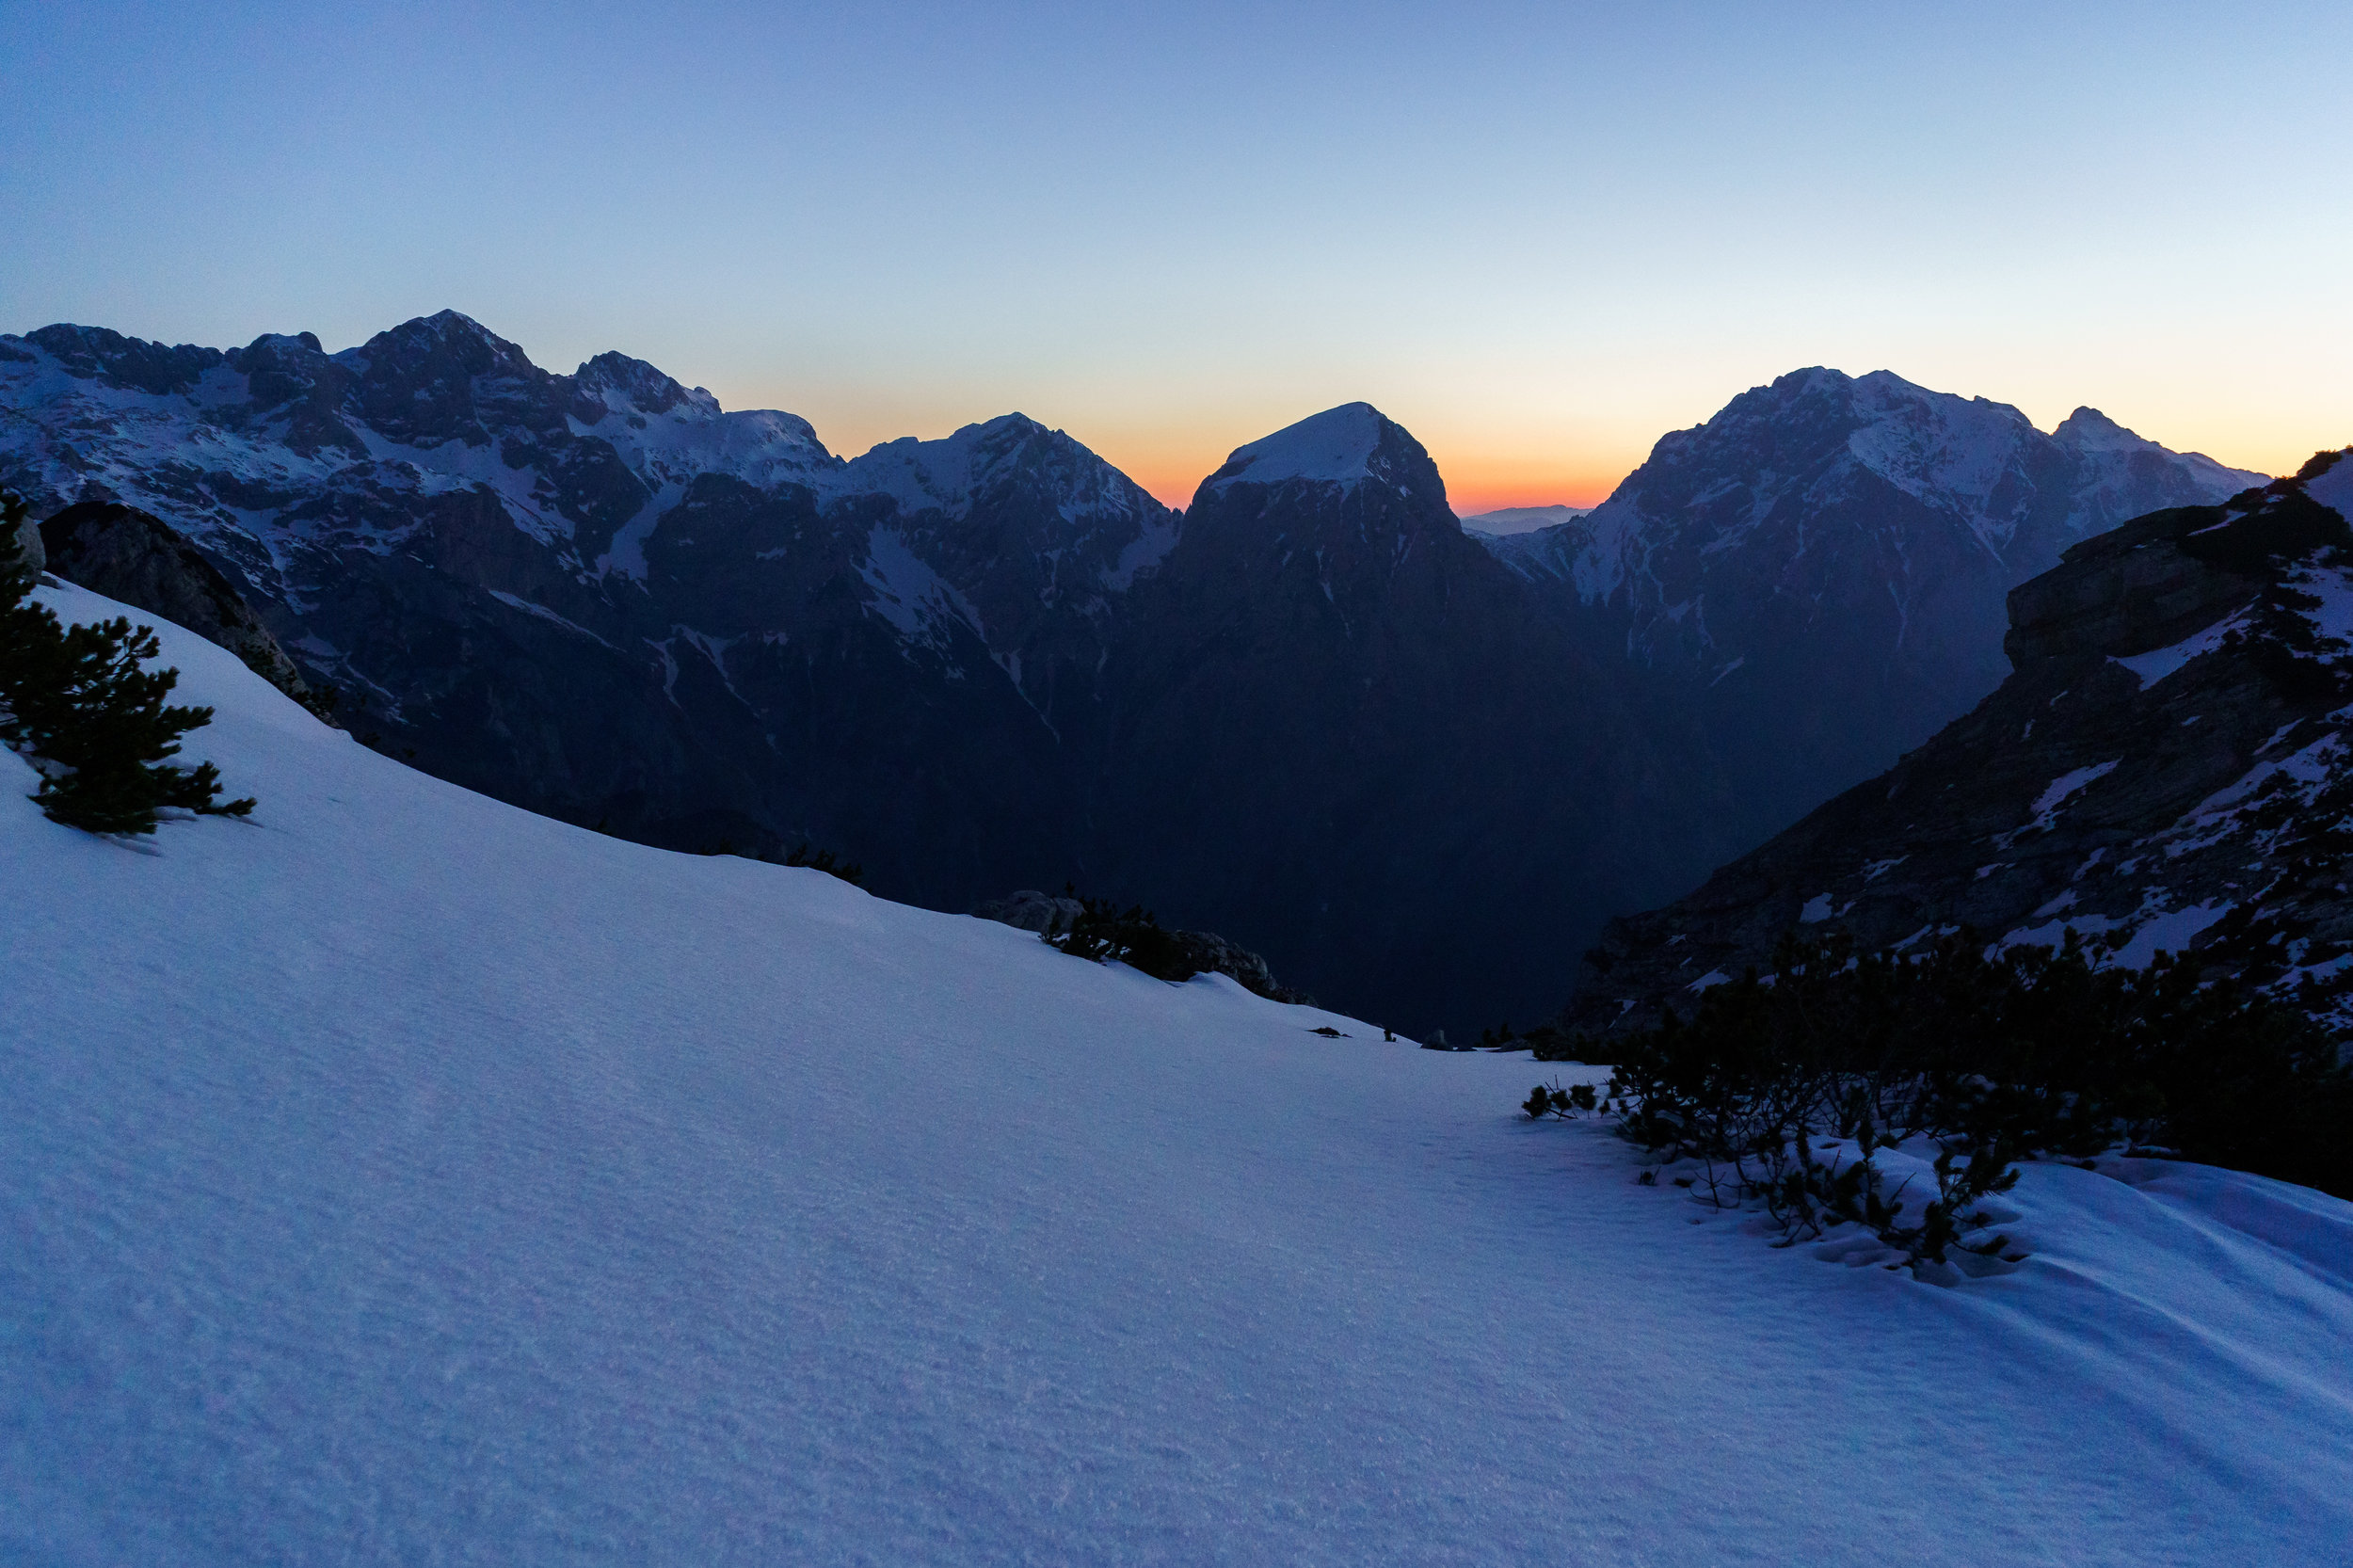 View towards the coming sunrise. The standout summit in the middle is Mount Brana.